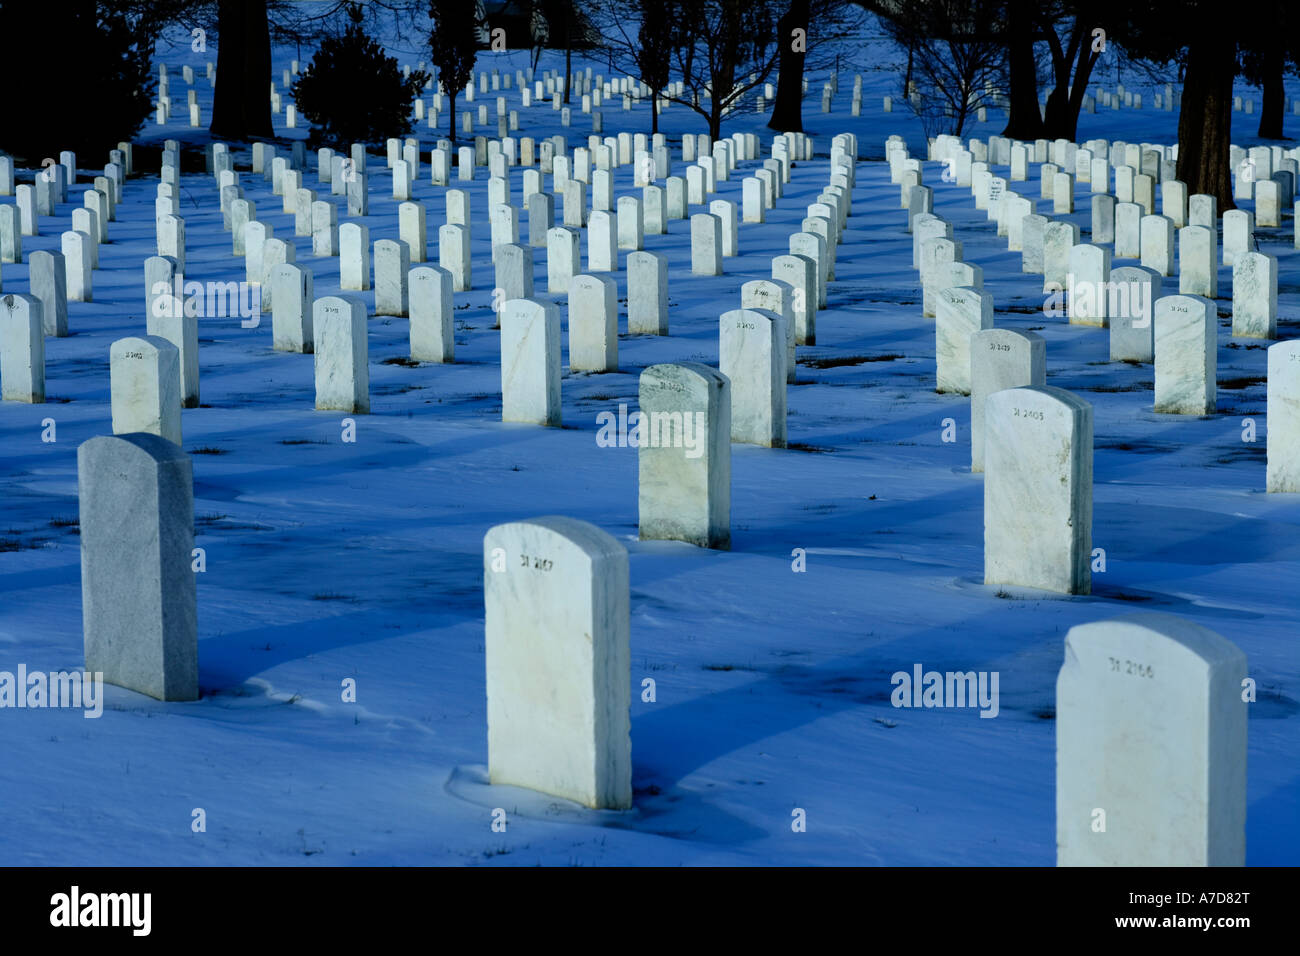 https://c7.alamy.com/comp/A7D82T/rows-of-headstones-in-arlington-national-cemetery-in-the-snow-at-night-A7D82T.jpg